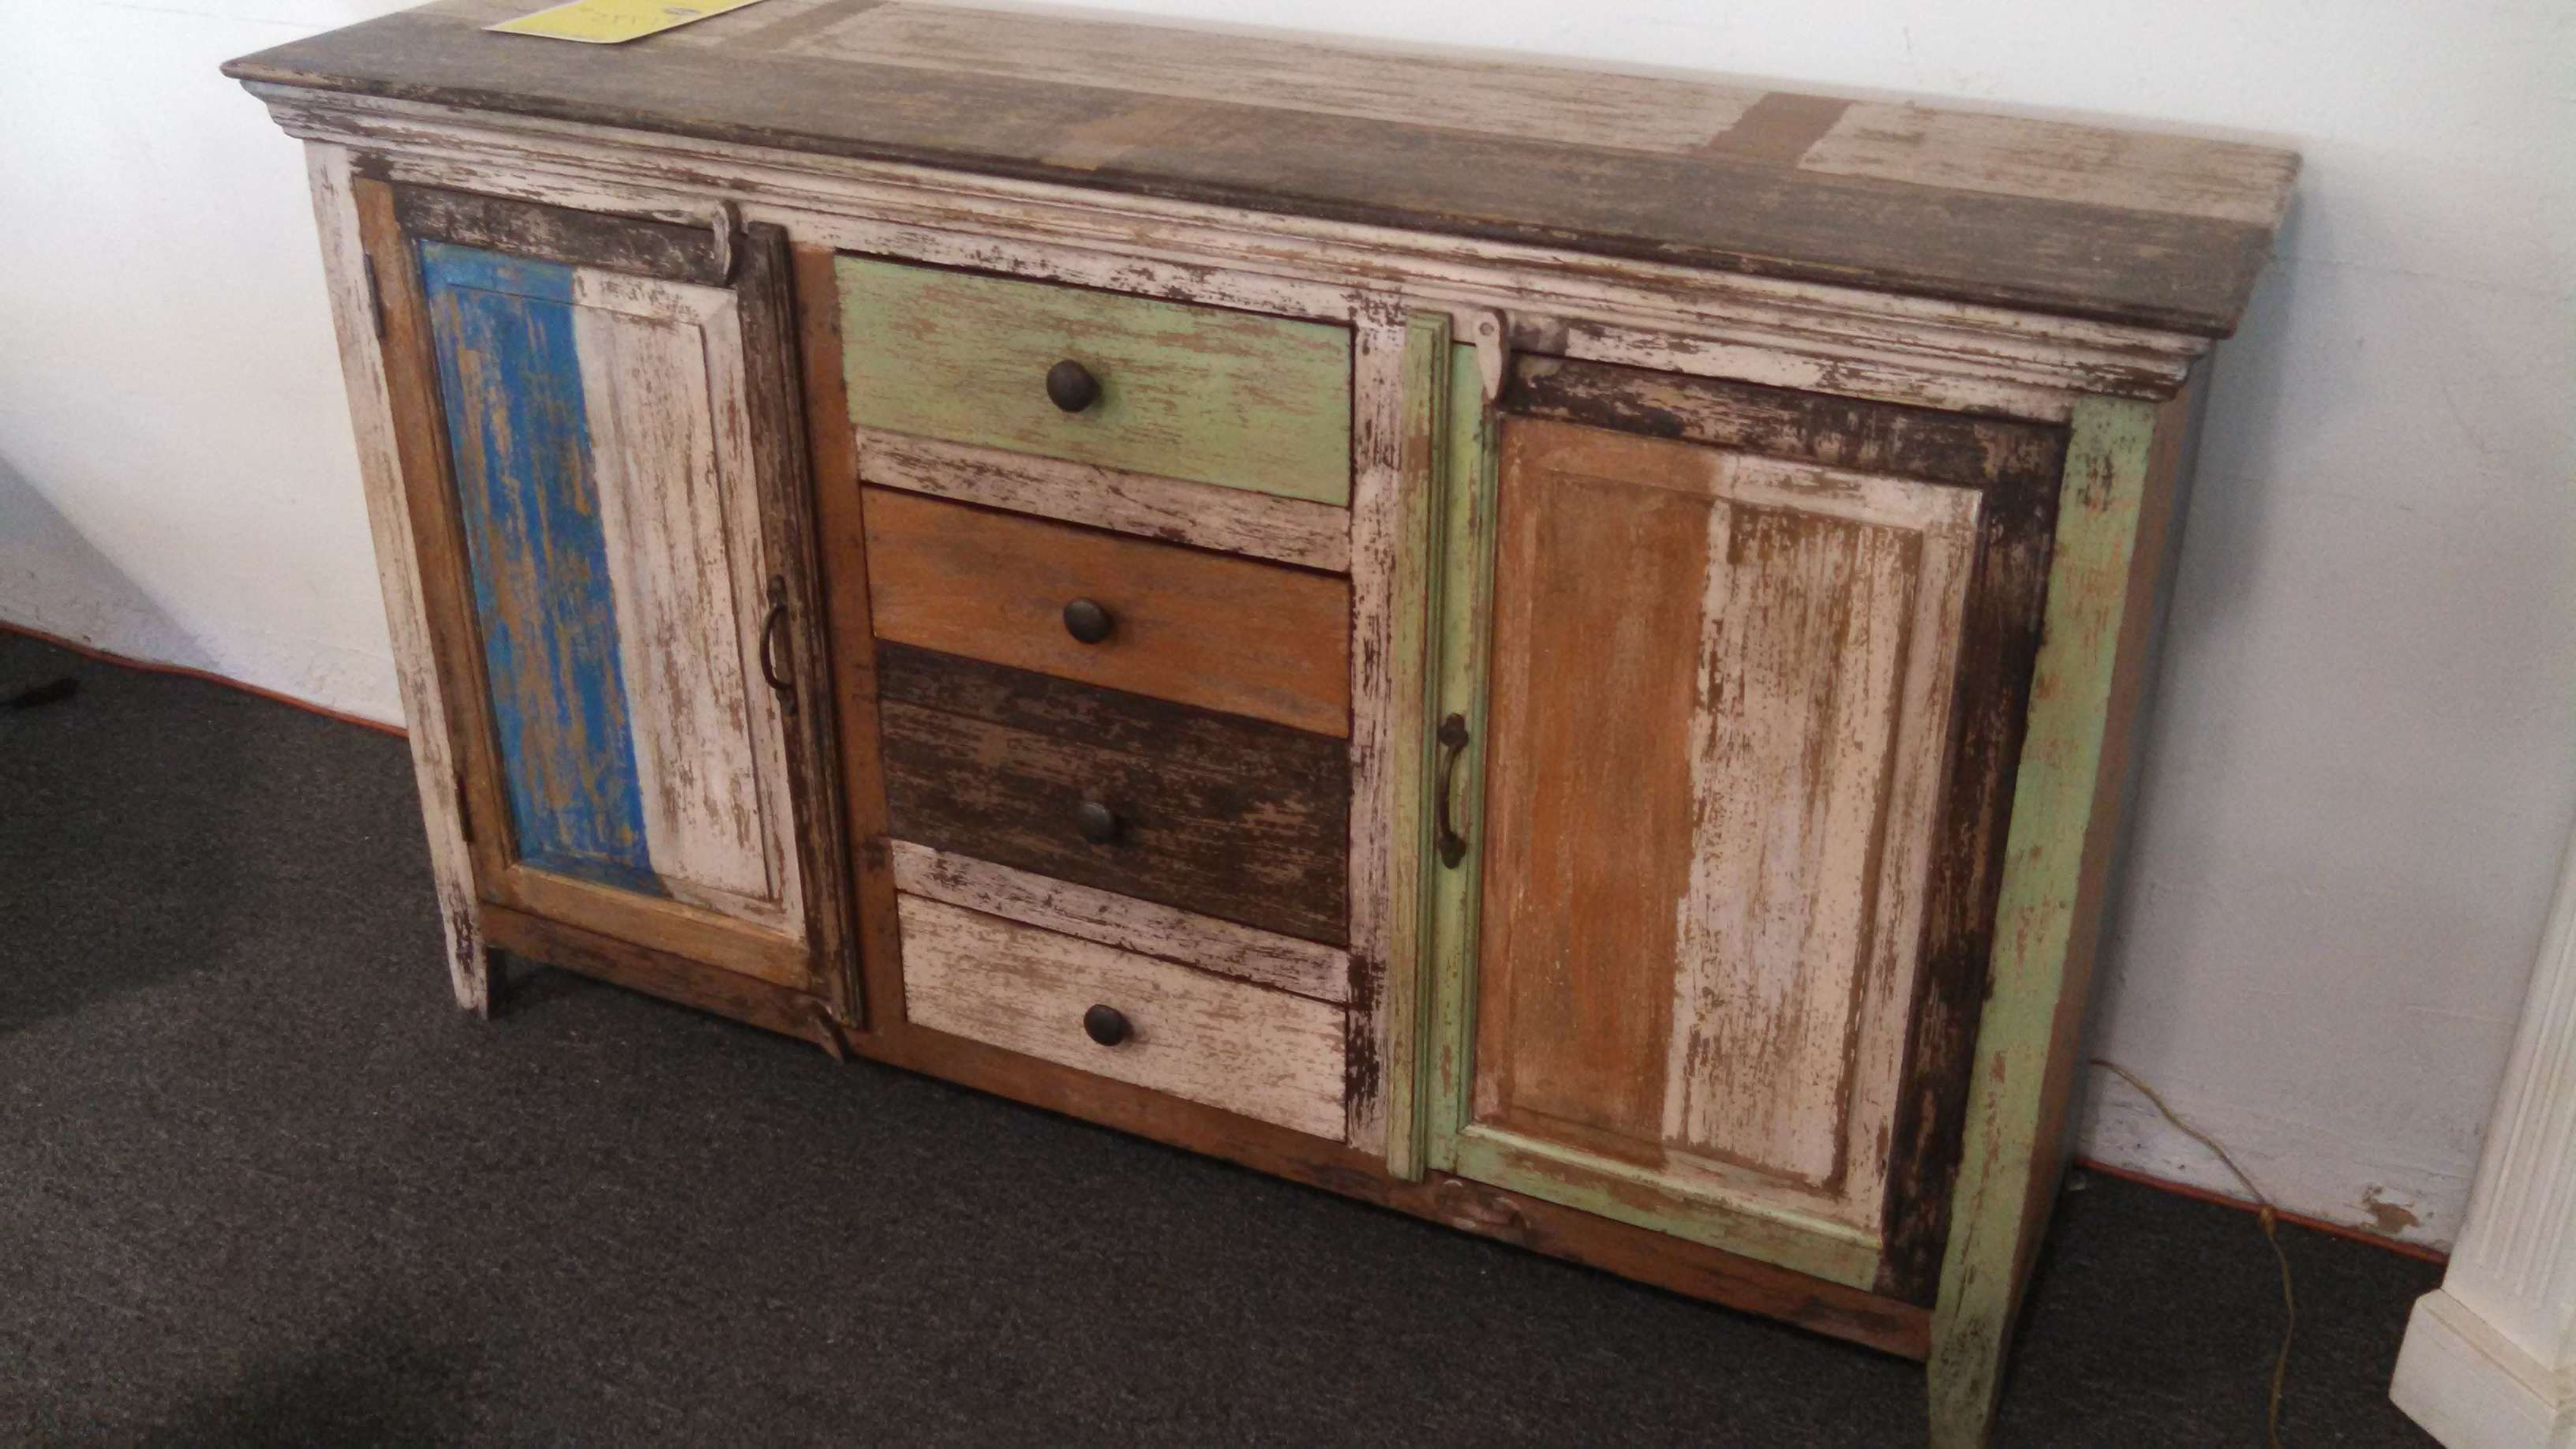 Sideboard Buffet Table Inspirational With Furniture Contemporary With Regard To Distressed Sideboards (View 11 of 20)